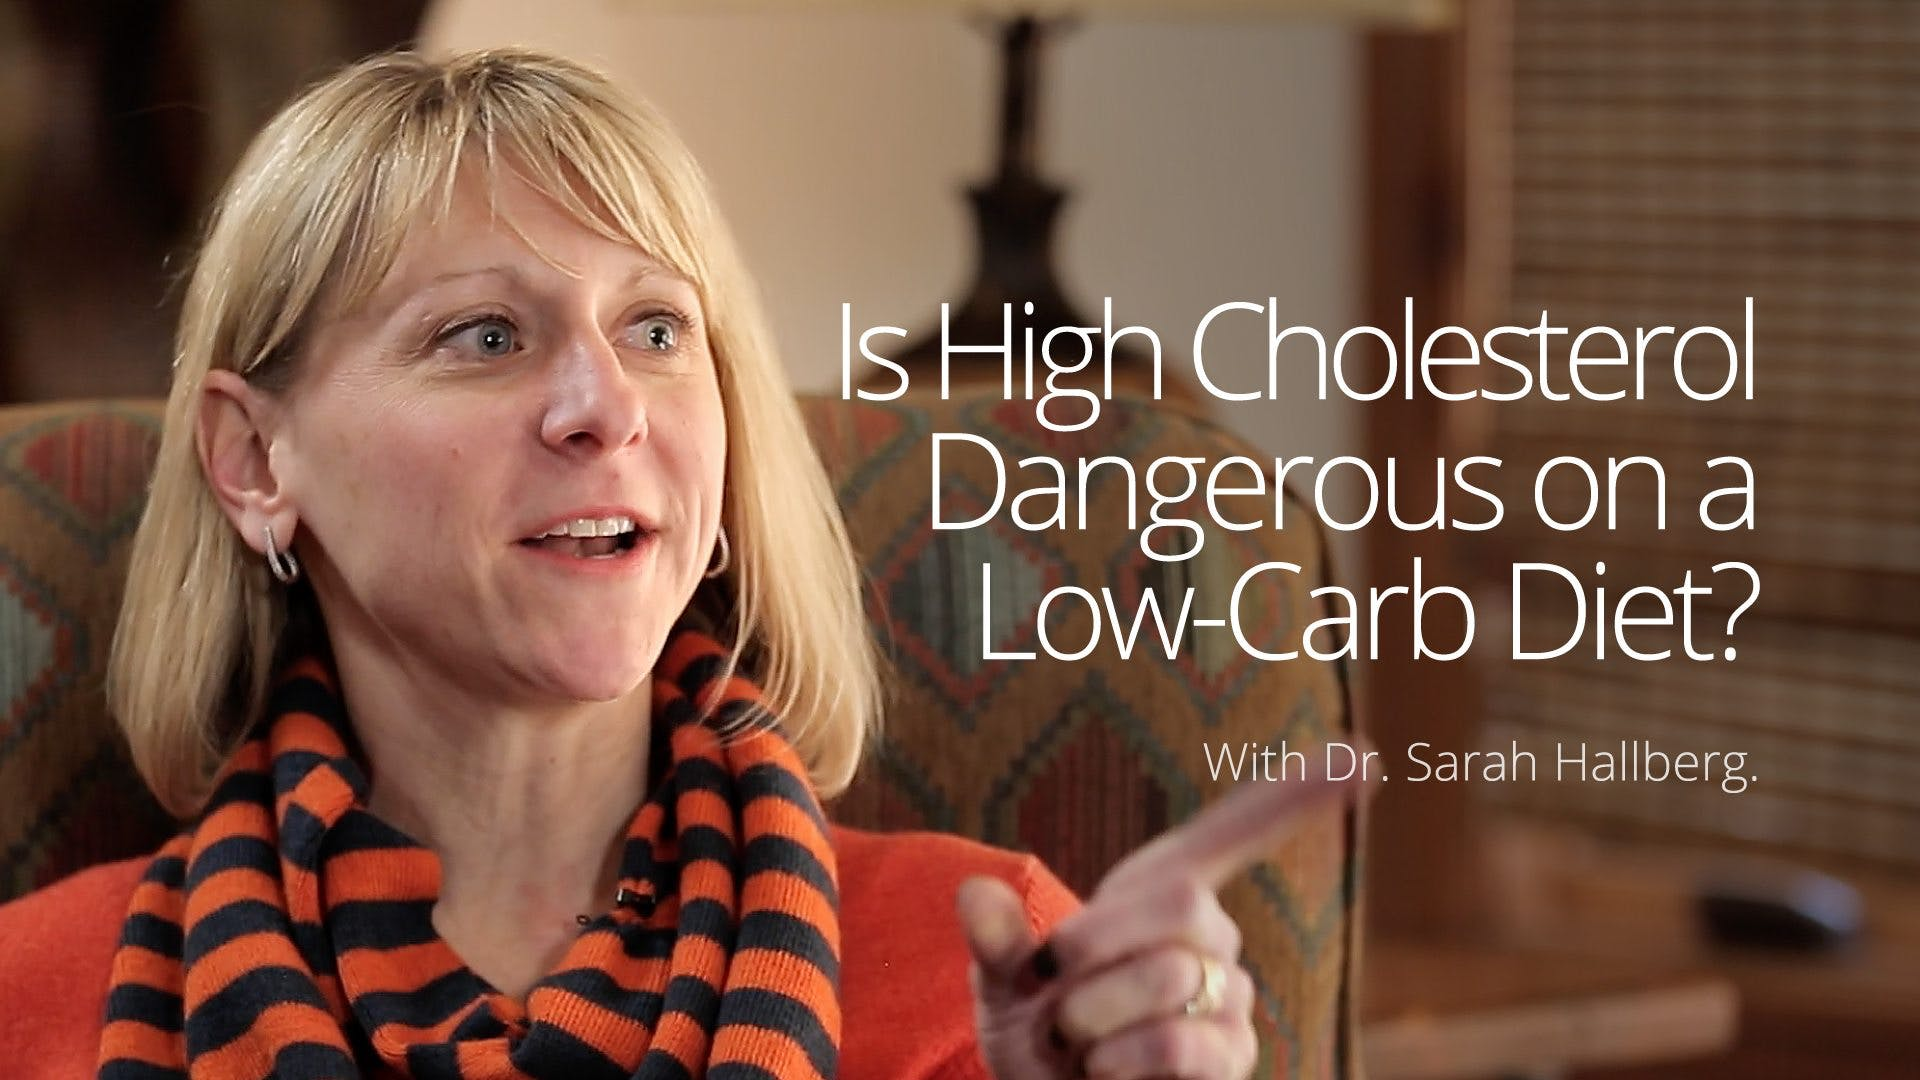 Is high cholesterol dangerous on a low-carb diet?